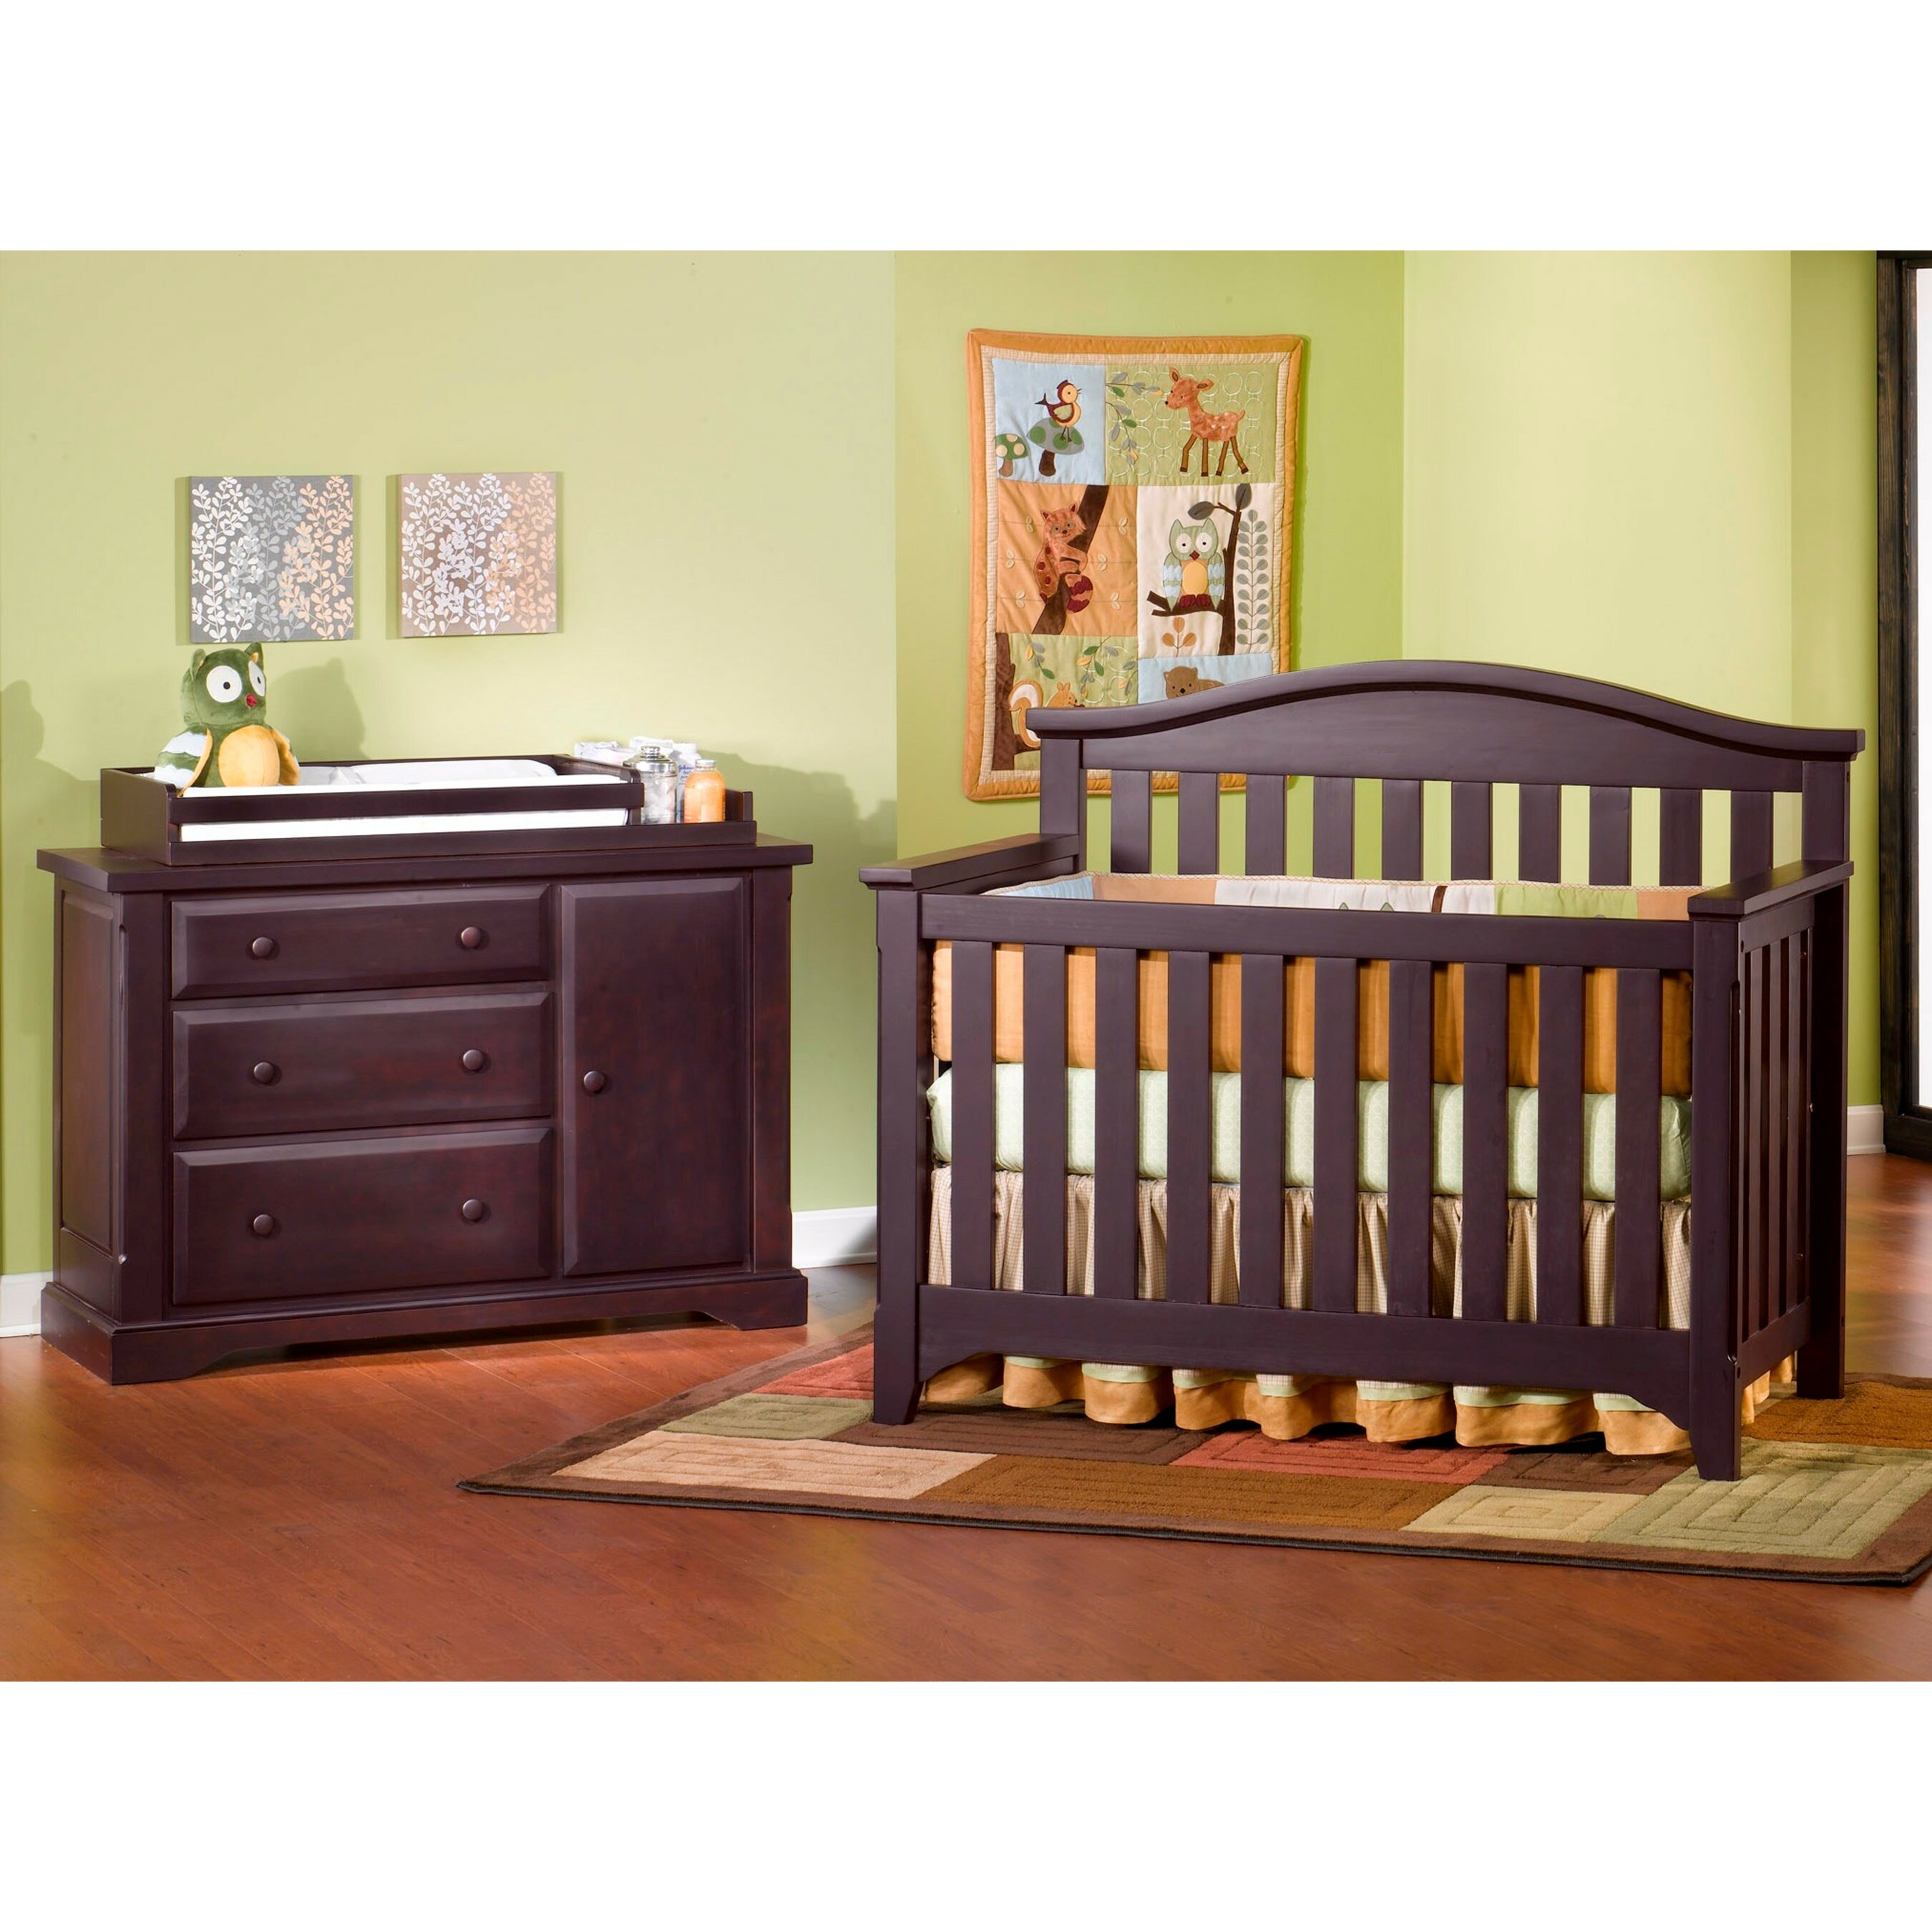 Child craft hawthorne nursery 3 piece convertible crib set for Child craft crib reviews